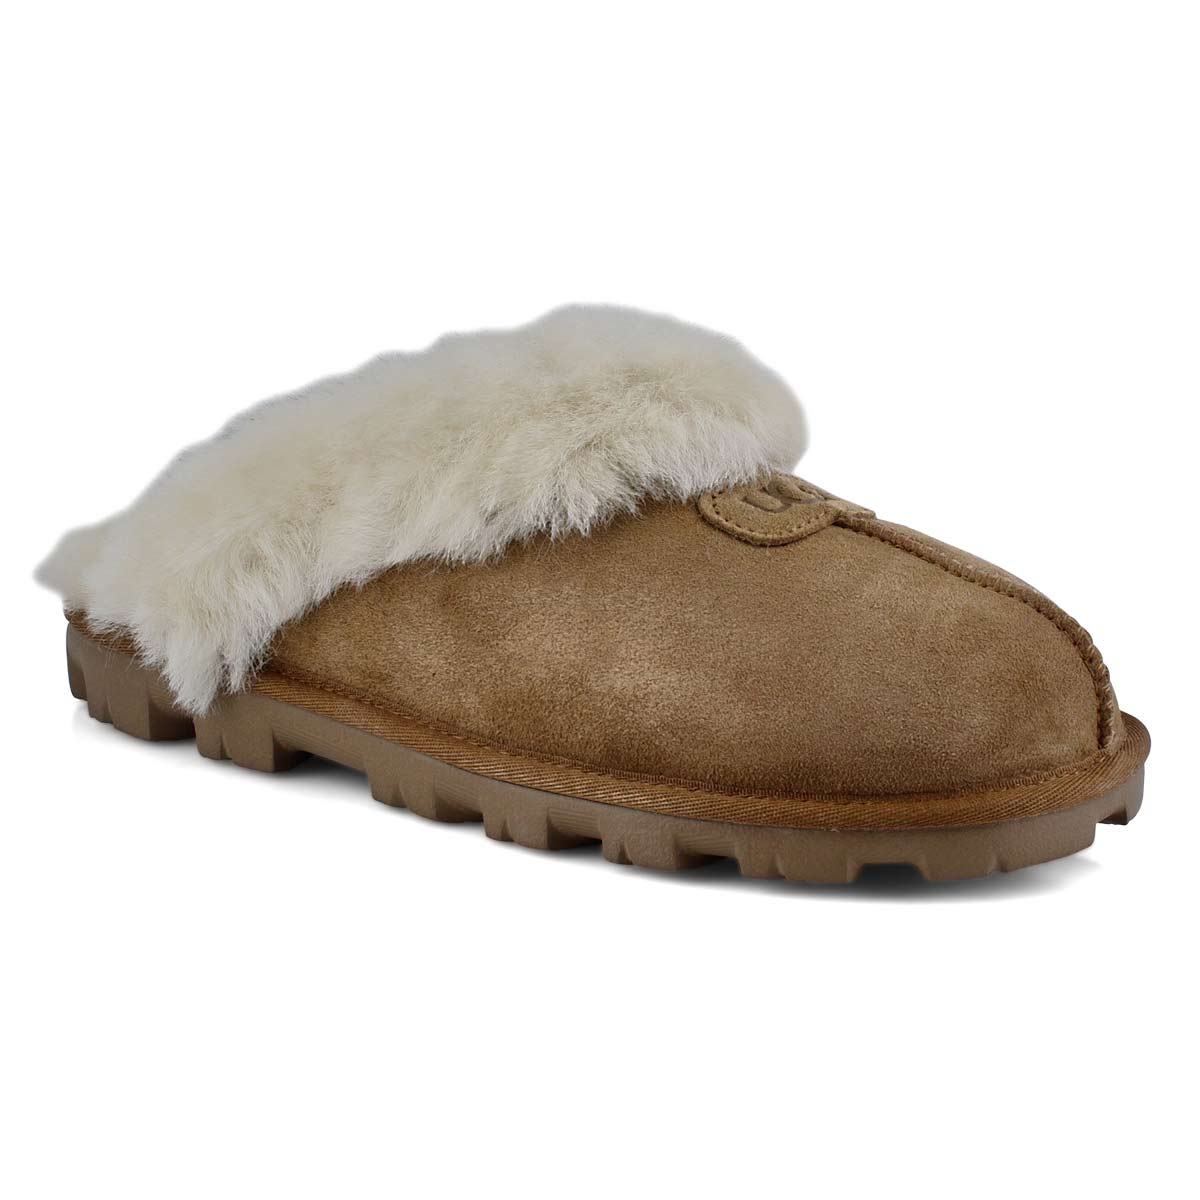 Slippers Australia Ugg Australia Women 39s Coquette Chestnut Sheepskin Slippers